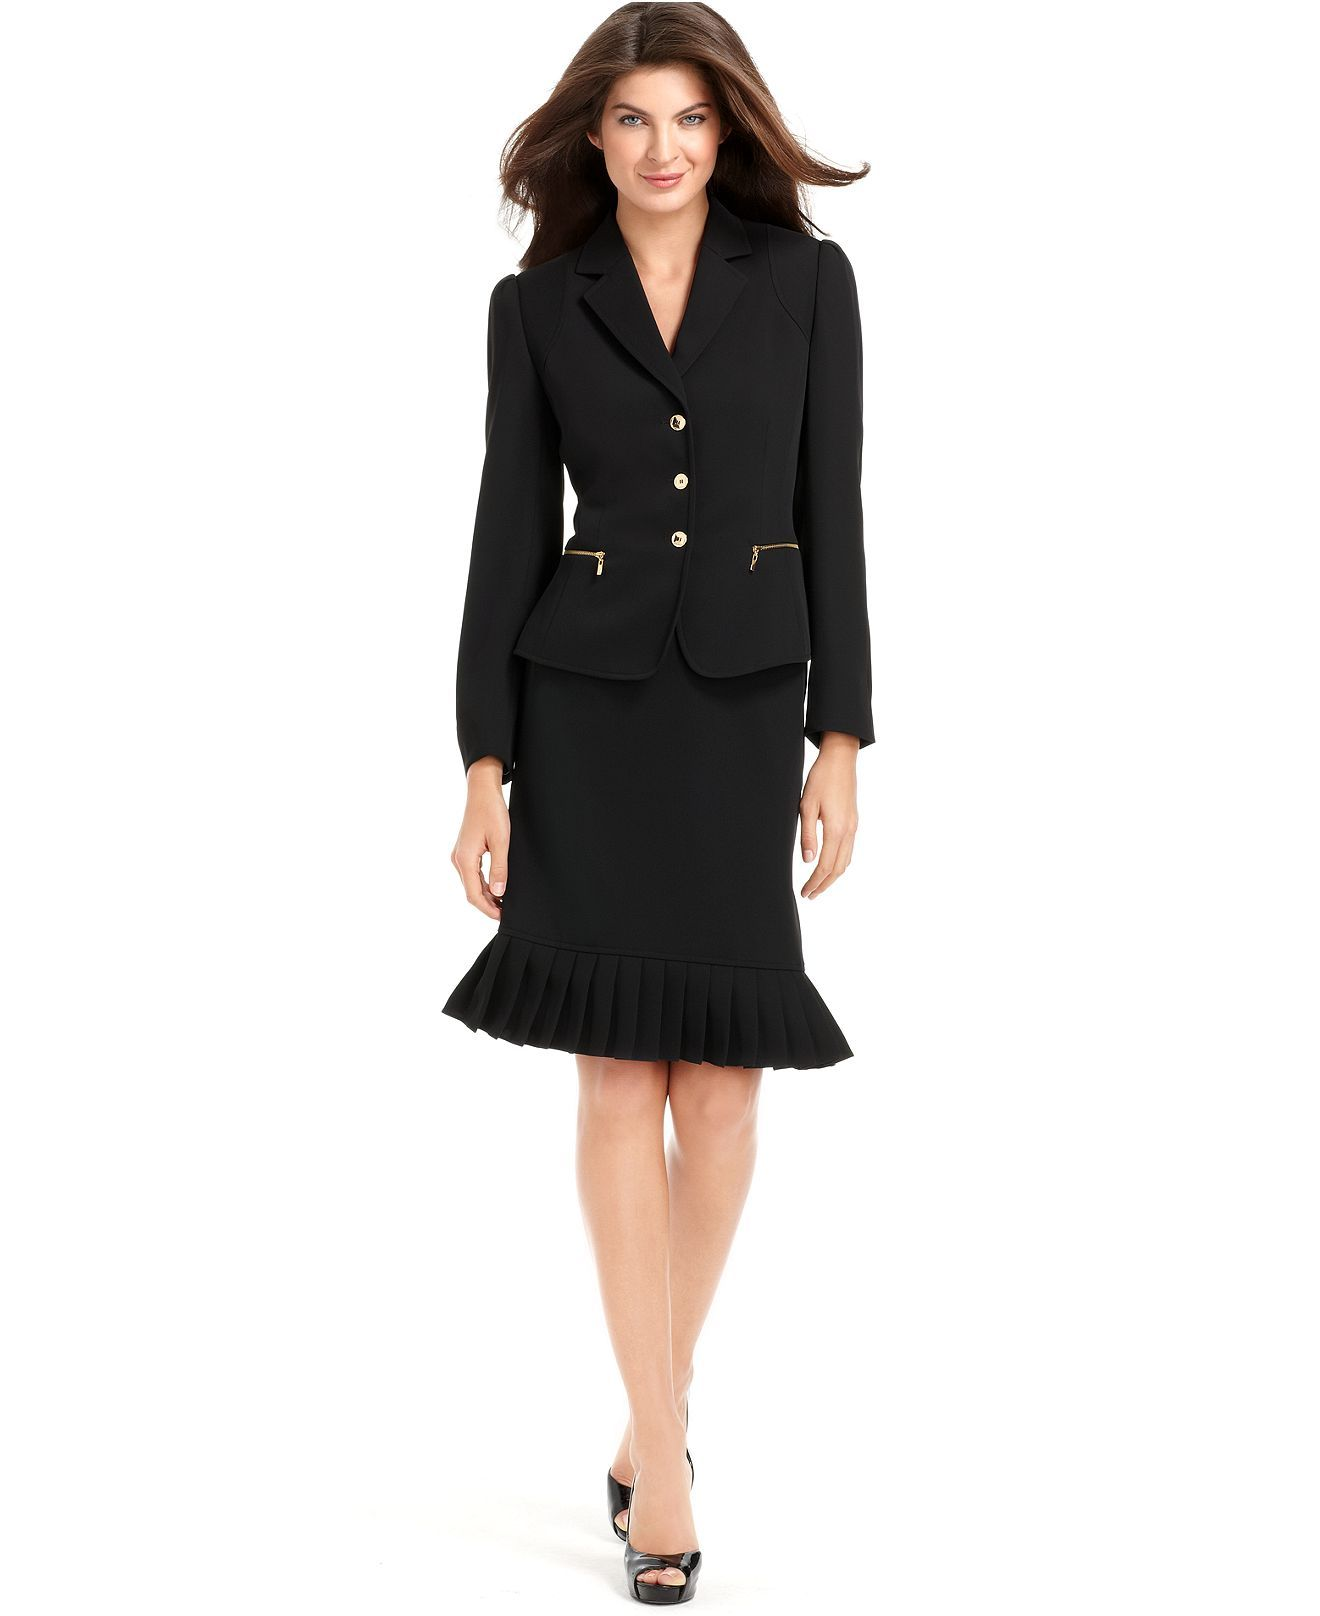 Tahari By Asl Suit Puff Shoulder Jacket Pleated Skirt Womens